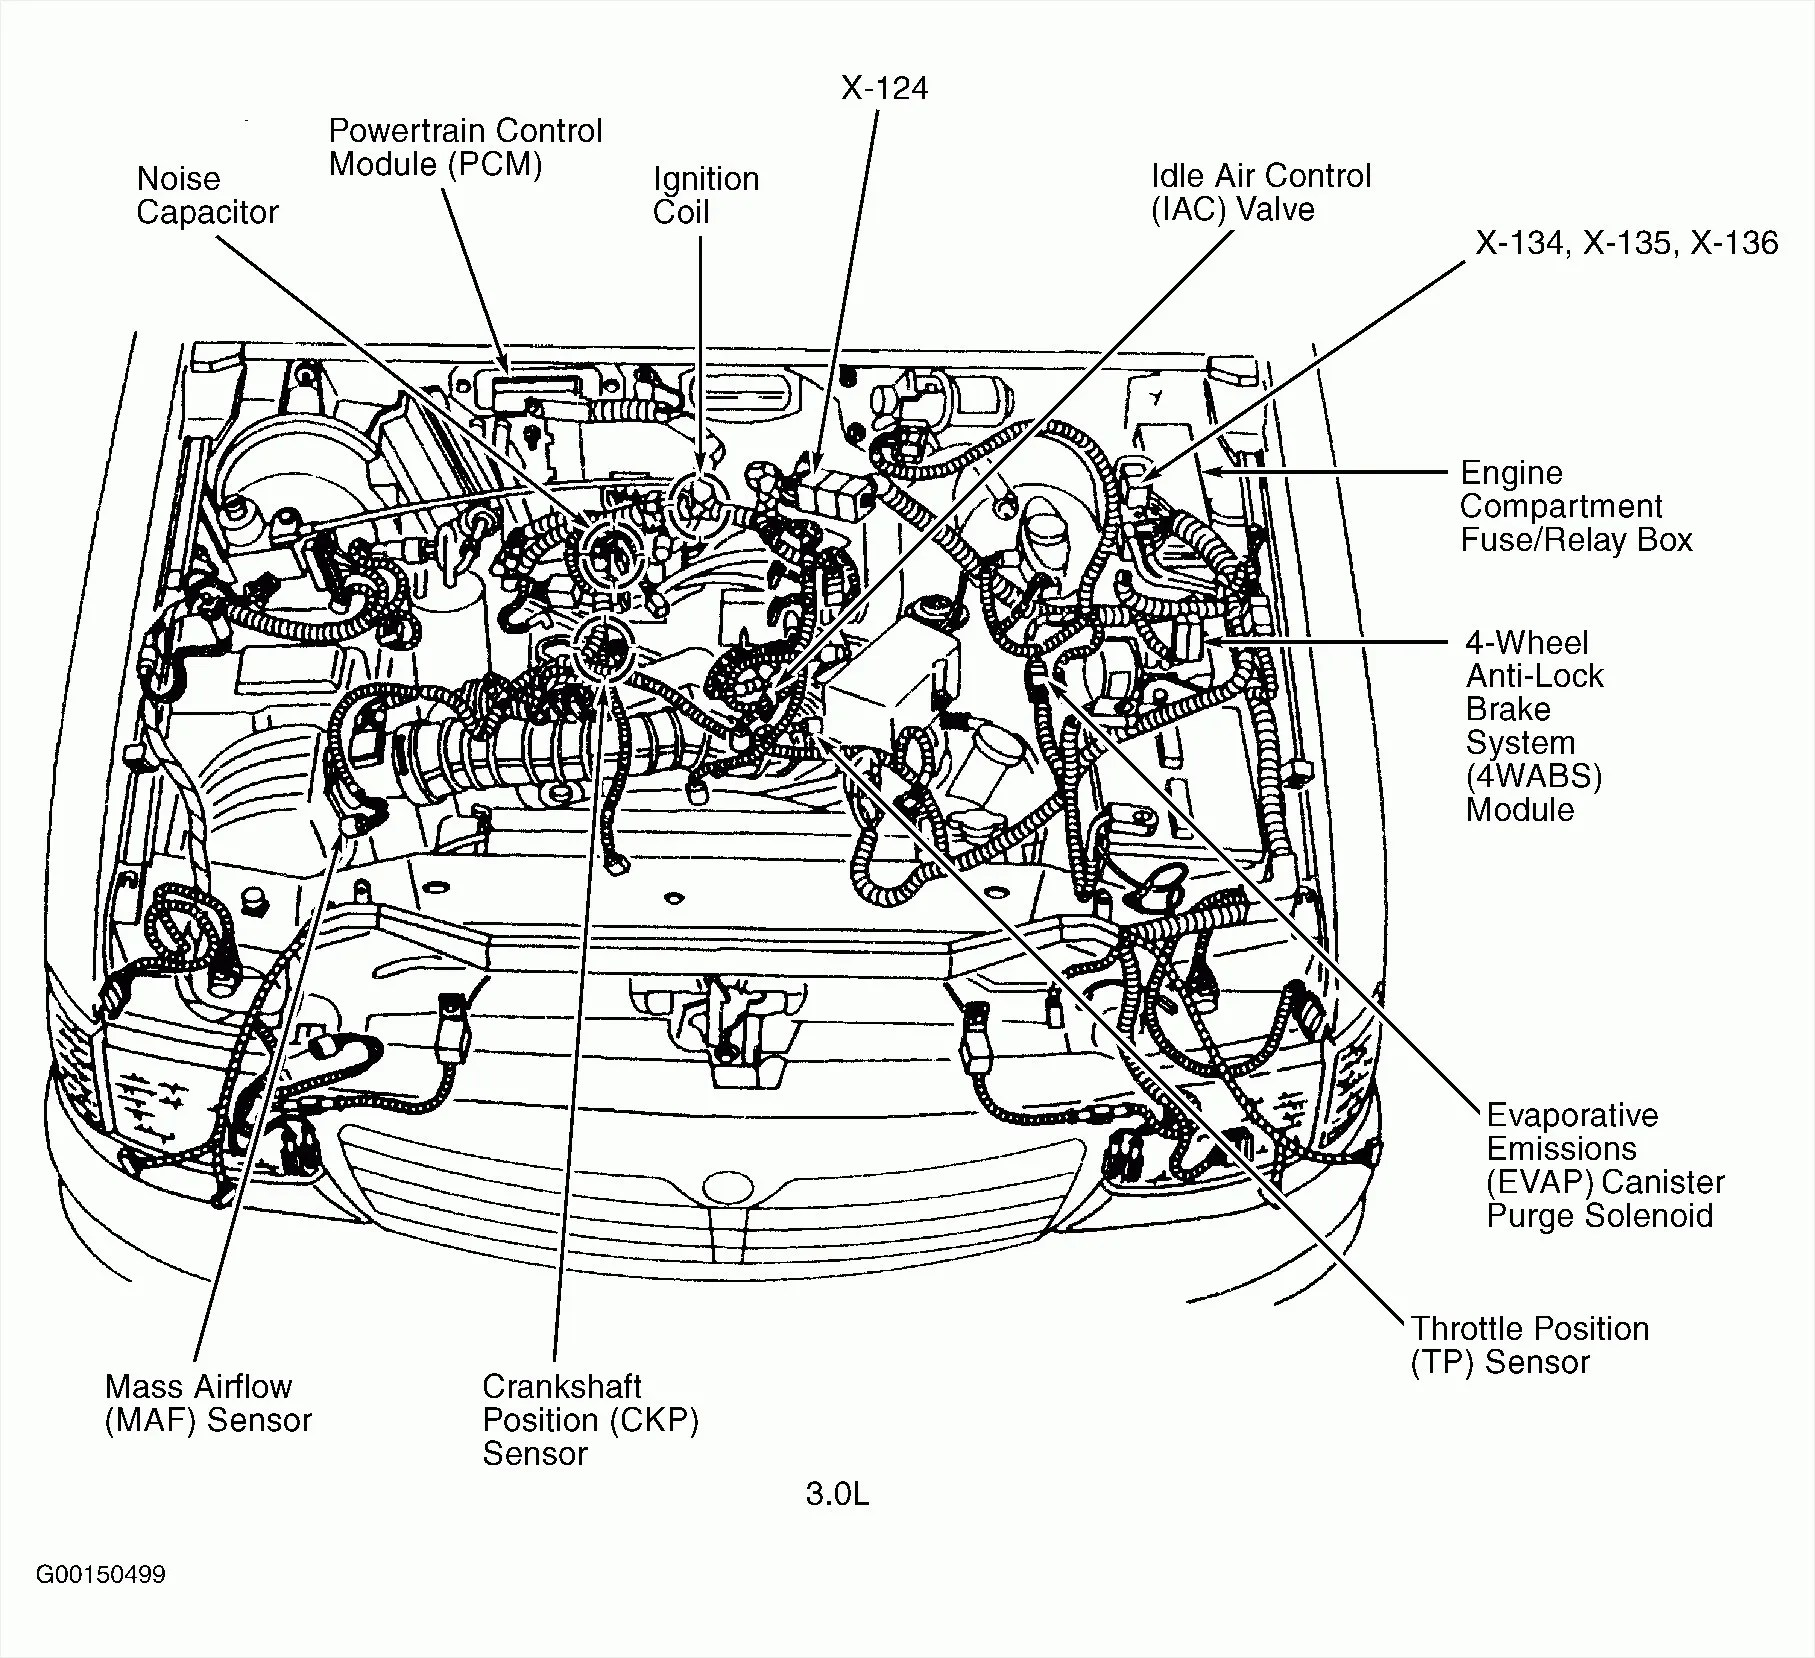 hight resolution of 2004 cts engine diagram wiring diagram operations 2004 cadillac cts engine diagram 2004 cts engine diagram